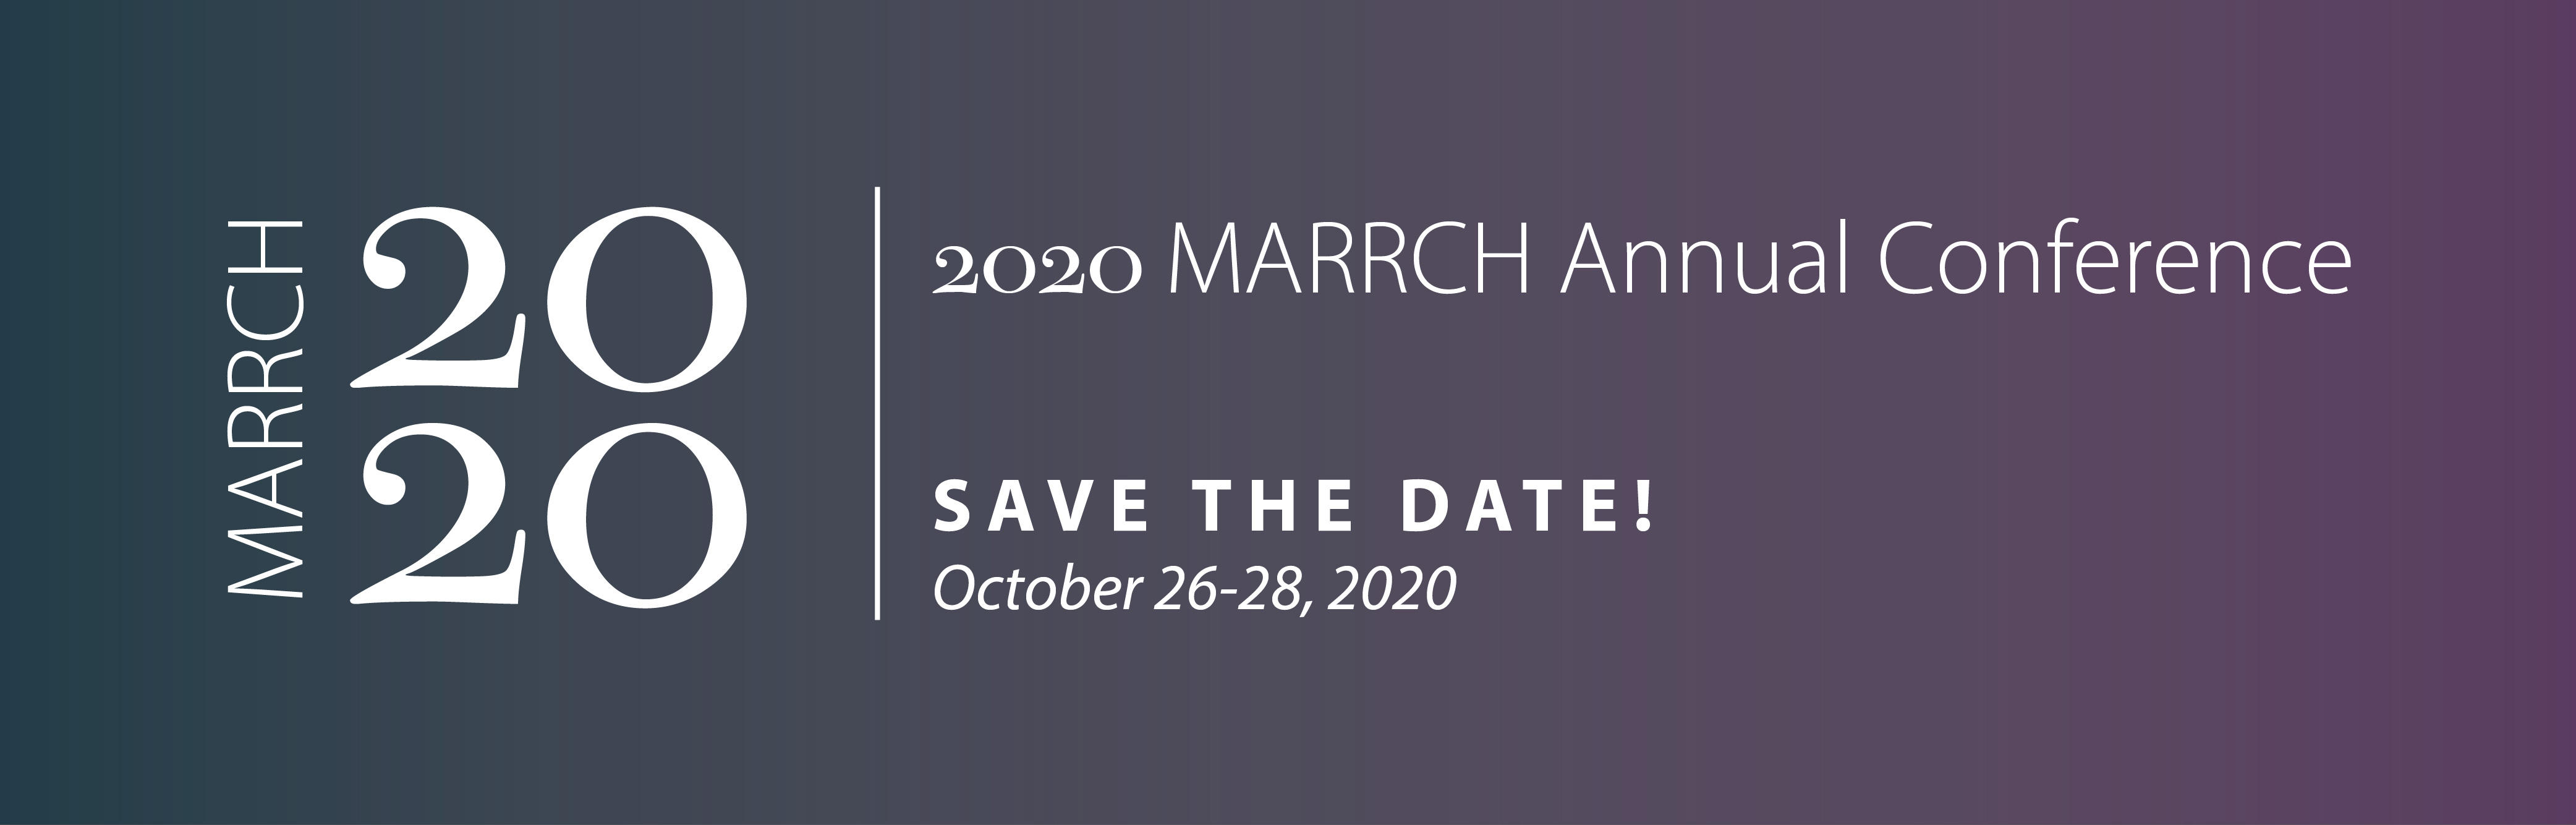 MARRCH Annual Conference